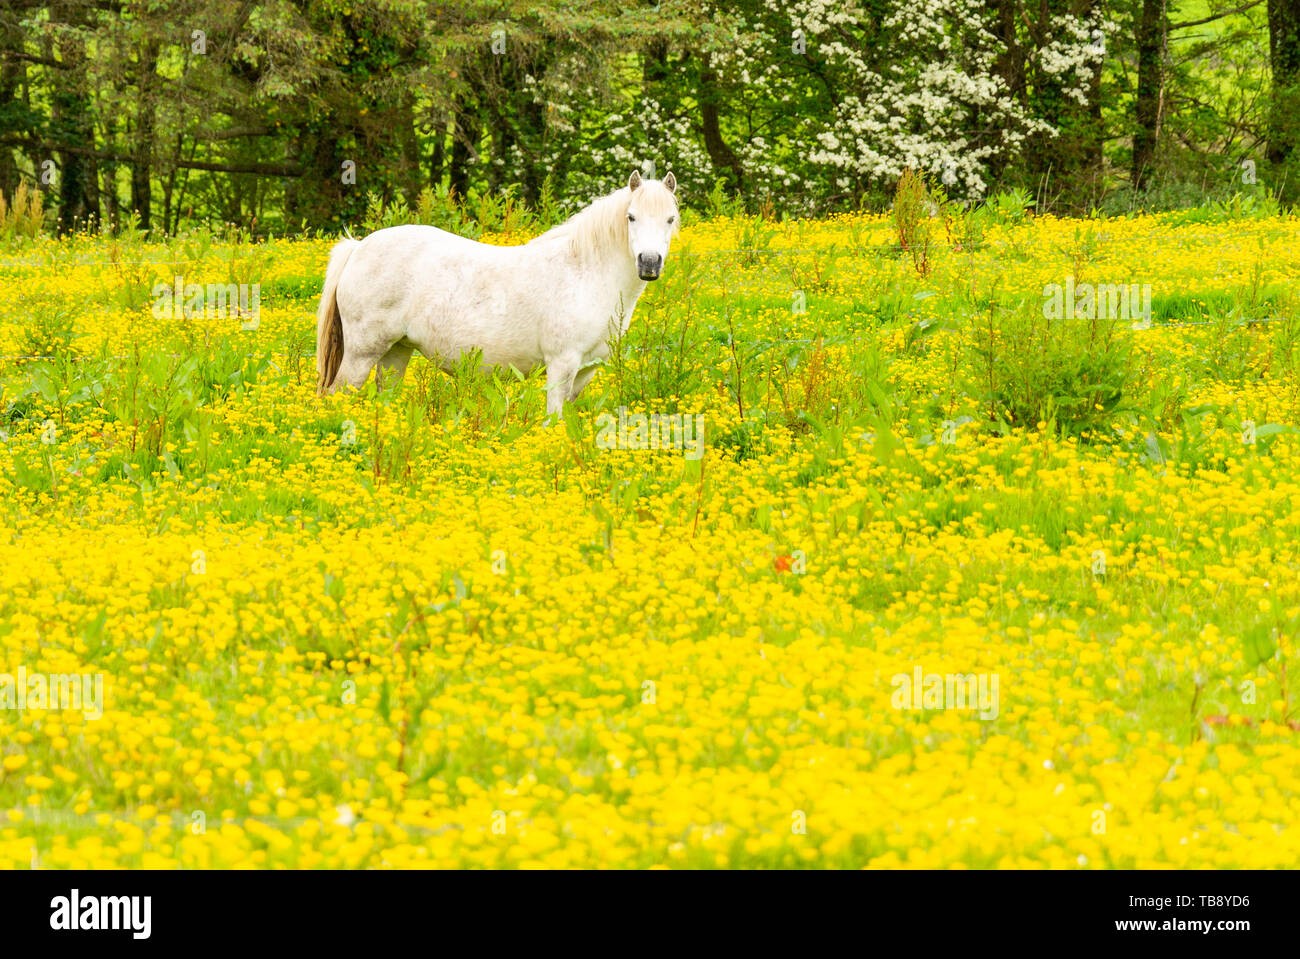 white-horse-equus-caballus-standing-in-a-field-of-buttercups-ranunculus-acris-TB8YD6.jpg